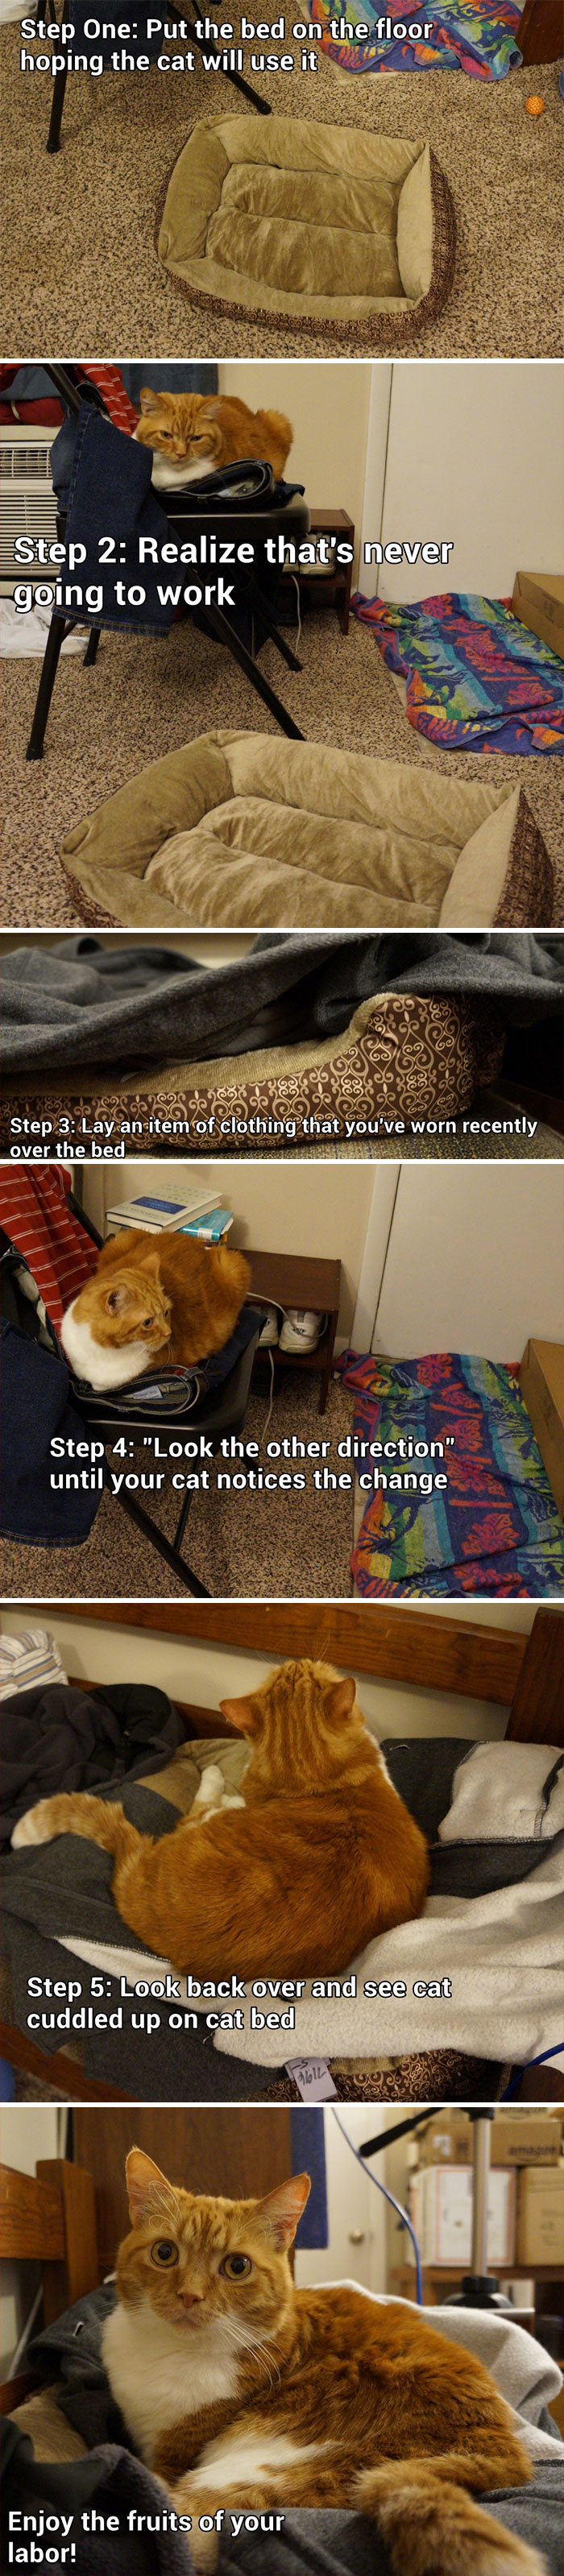 How To Get Your Cat To Use A Pet Bed